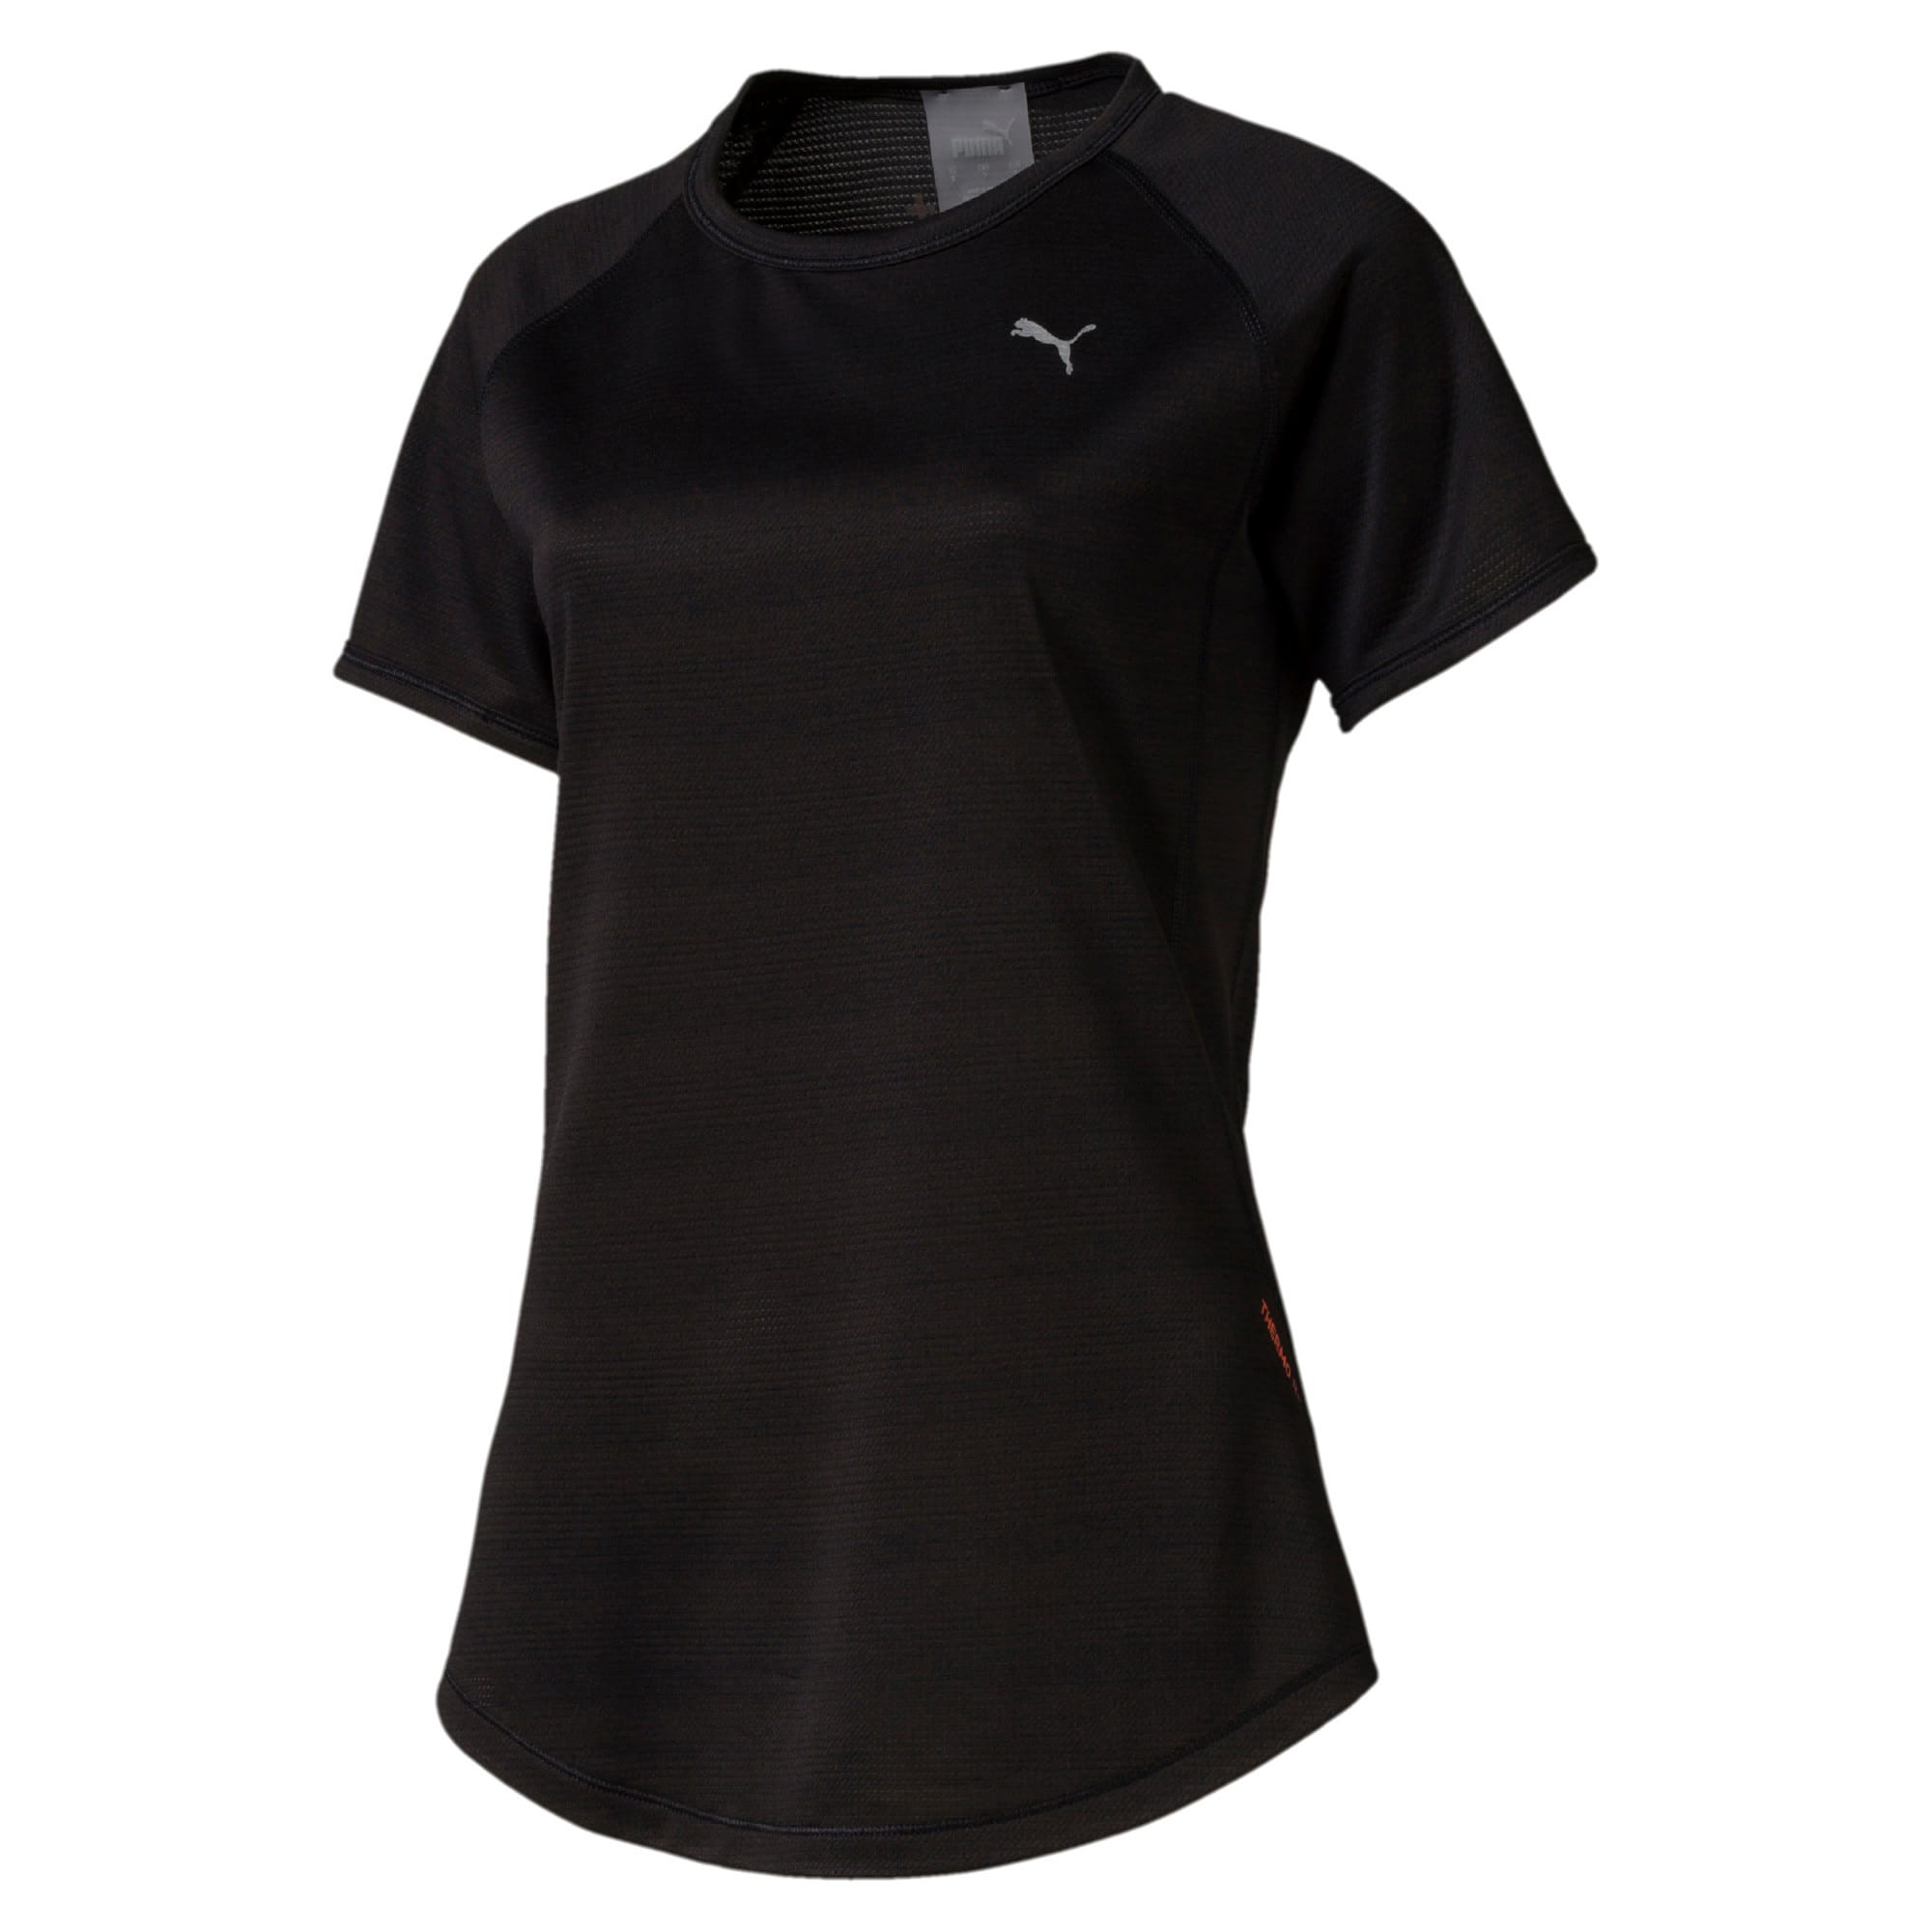 Thumbnail 4 of Get Fast Thermo-R+ Women's Tee, Puma Black, medium-IND